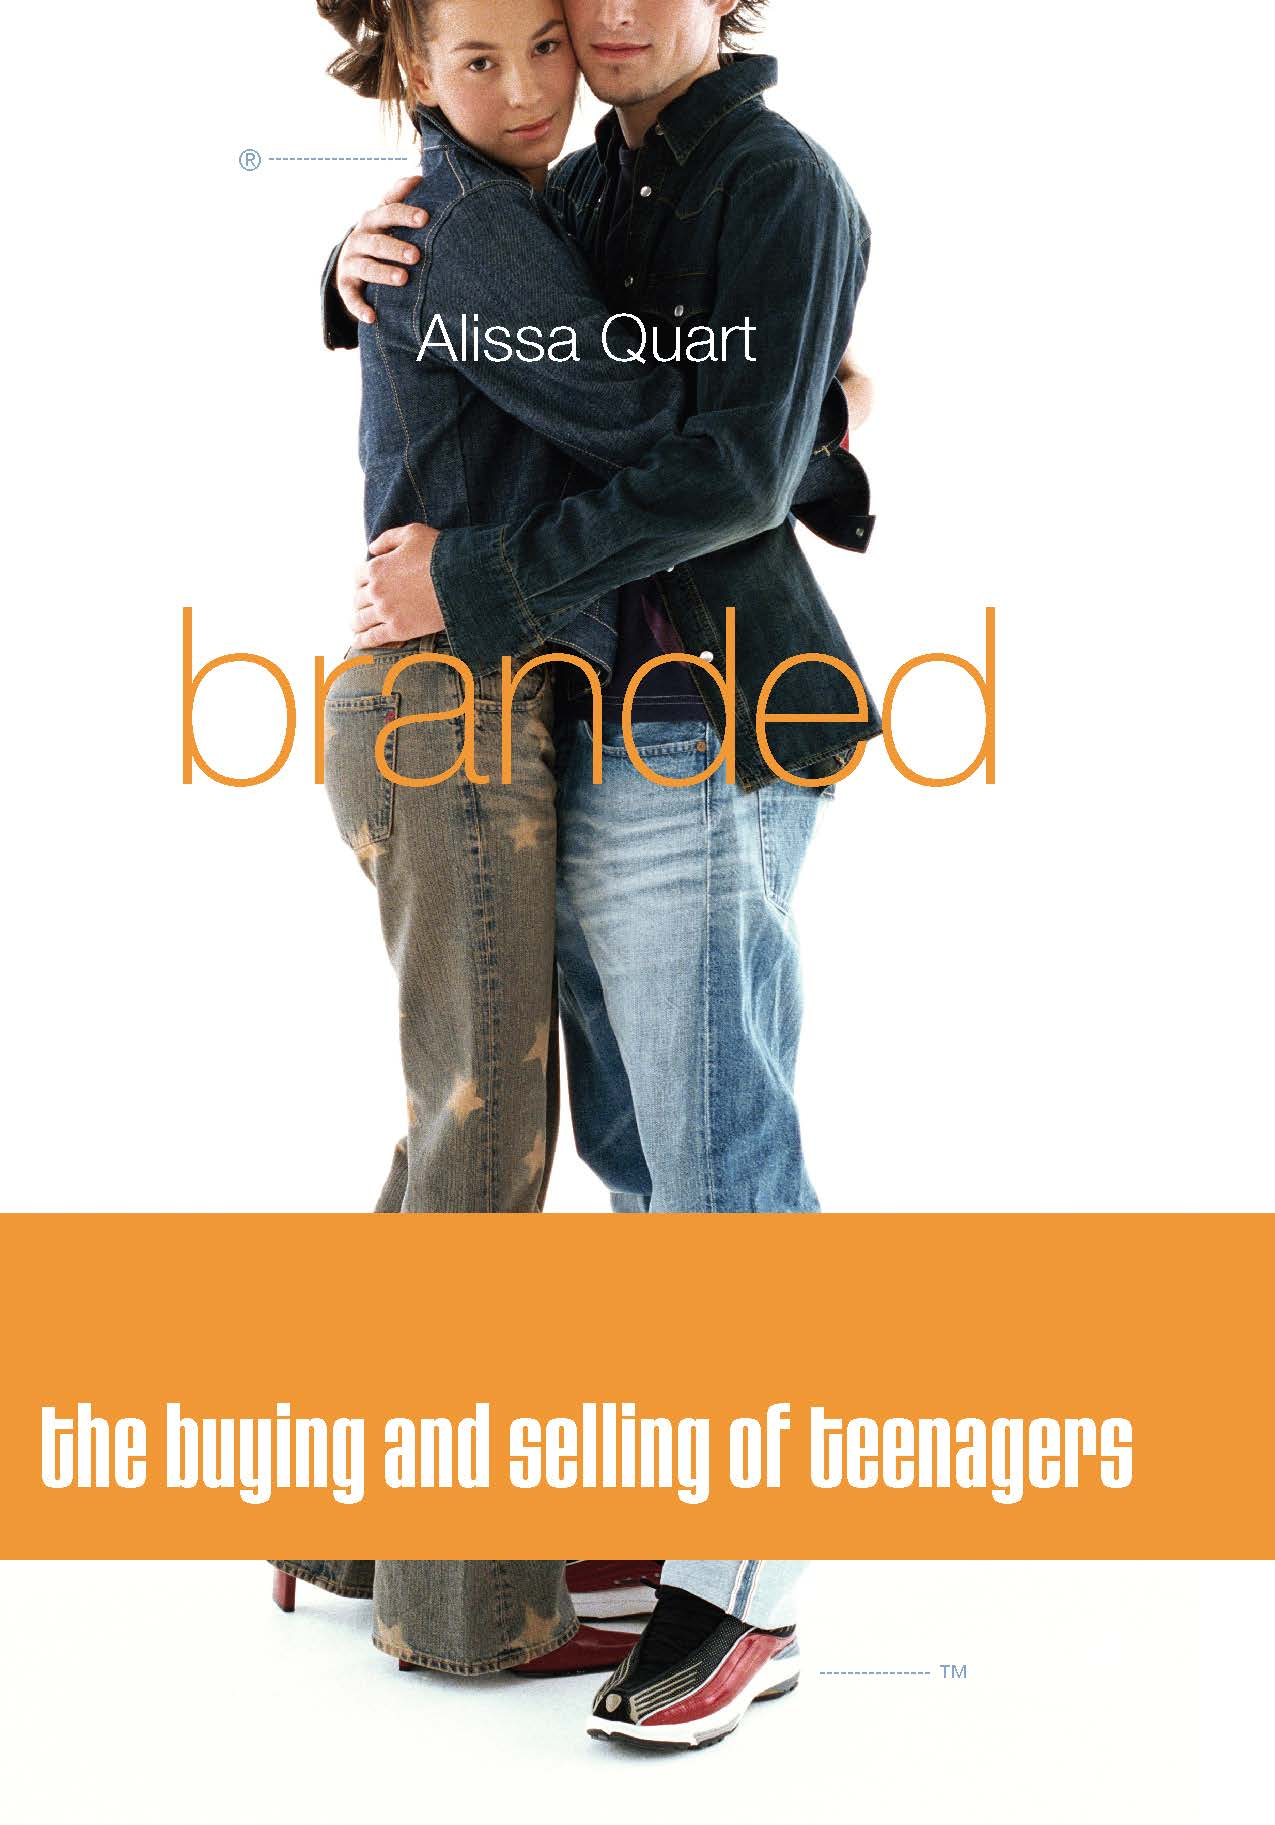 essays on melissa quarts branded Report abuse home reviews book reviews branded: the buying and selling of teenagers by alissa quart branded: the buying and selling of teenagers by.